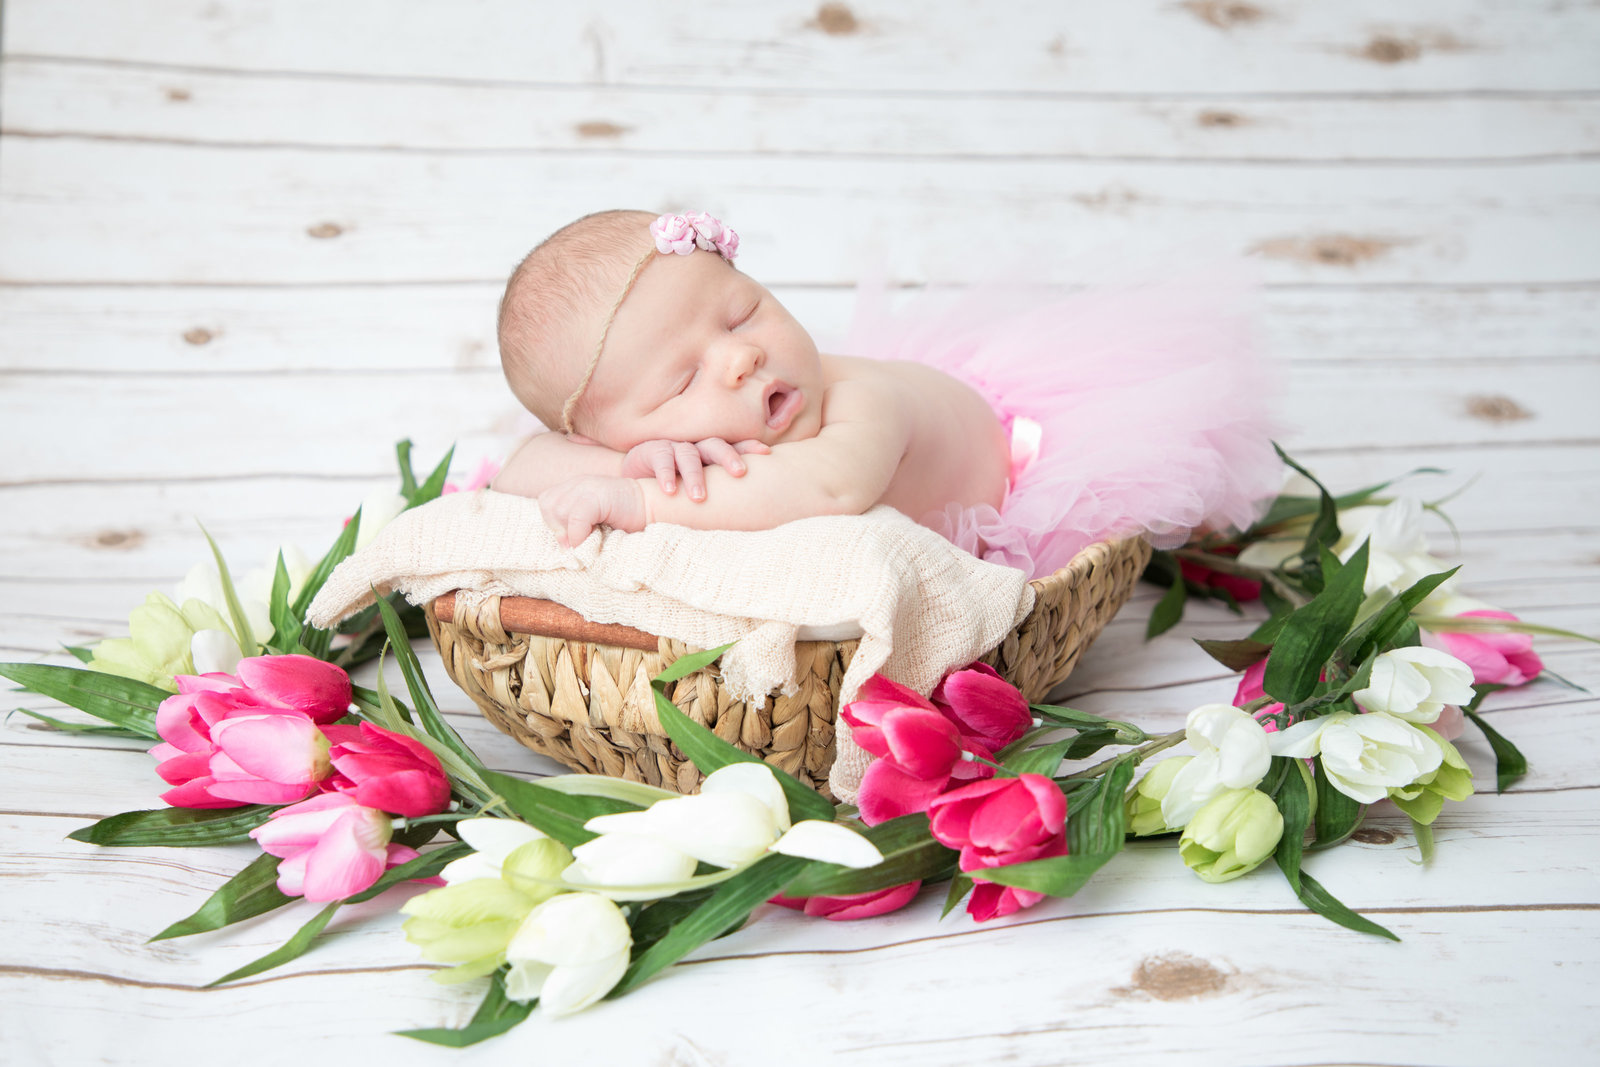 Newborn Baby Girl in a basket surrounded by pink flowers